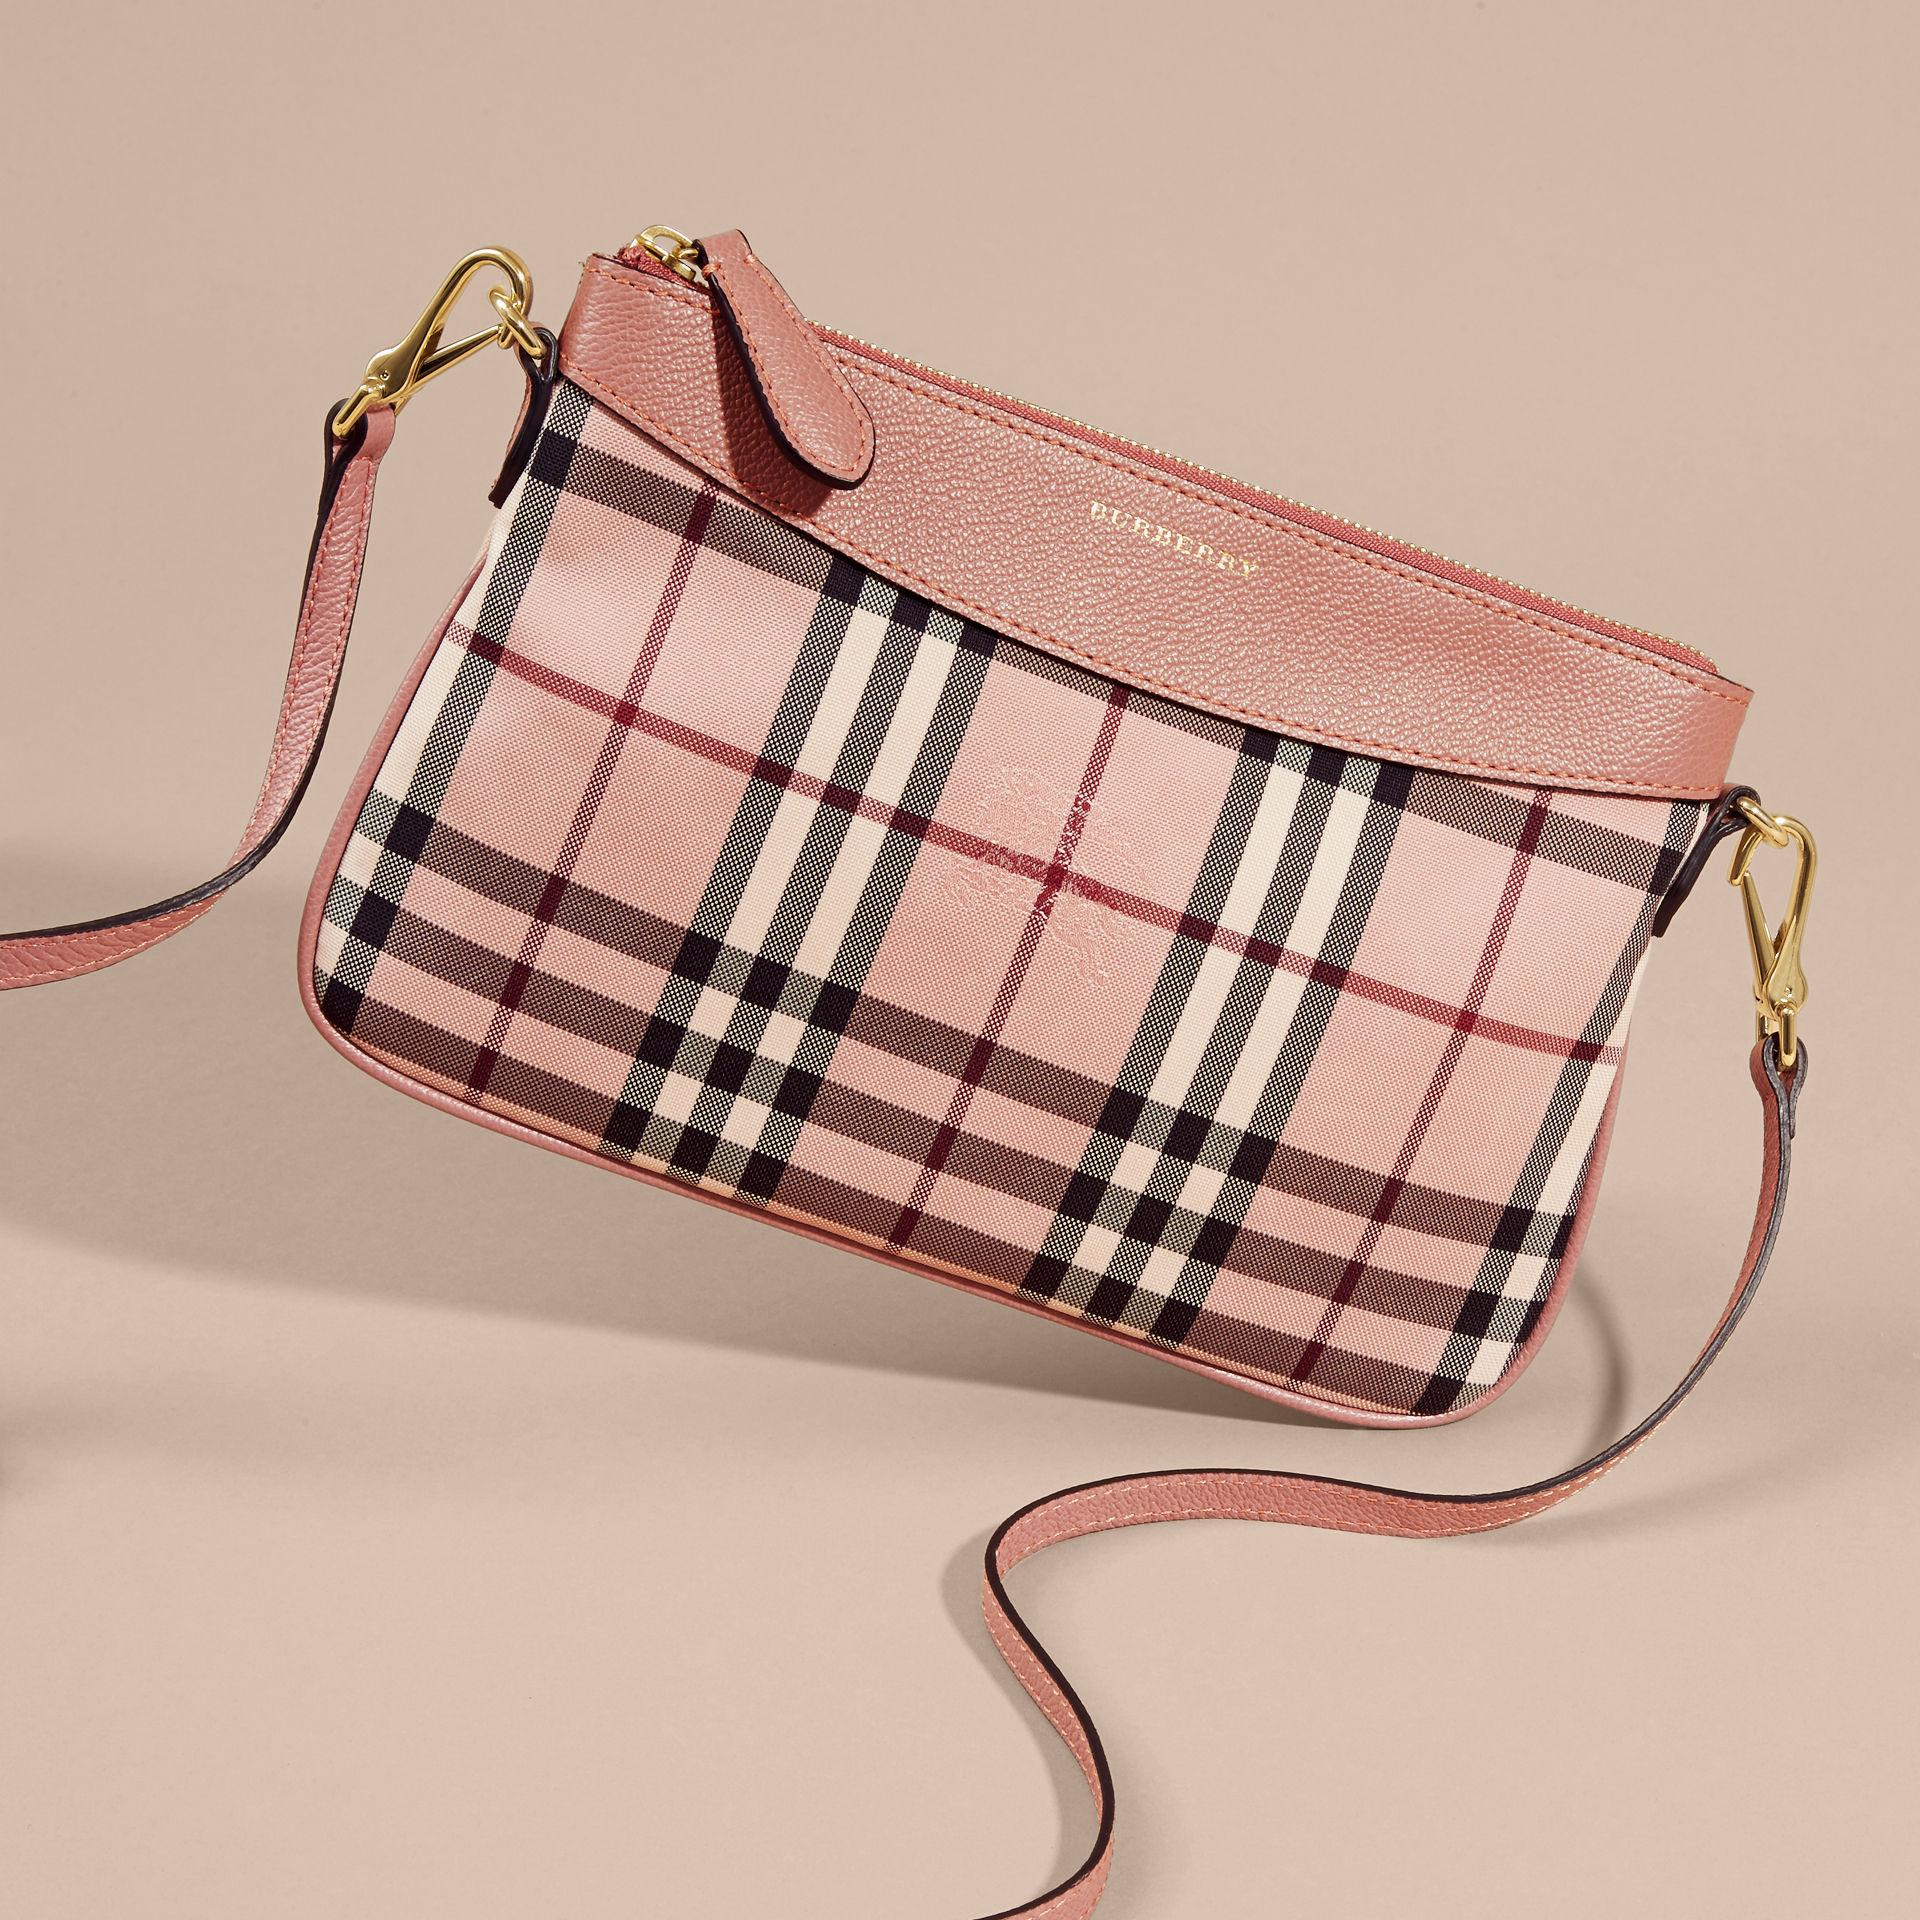 95caea345a2f21 Lyst - Burberry Horseferry Check And Leather Clutch Bag Ash Rose/ Dusty  Pink in Pink